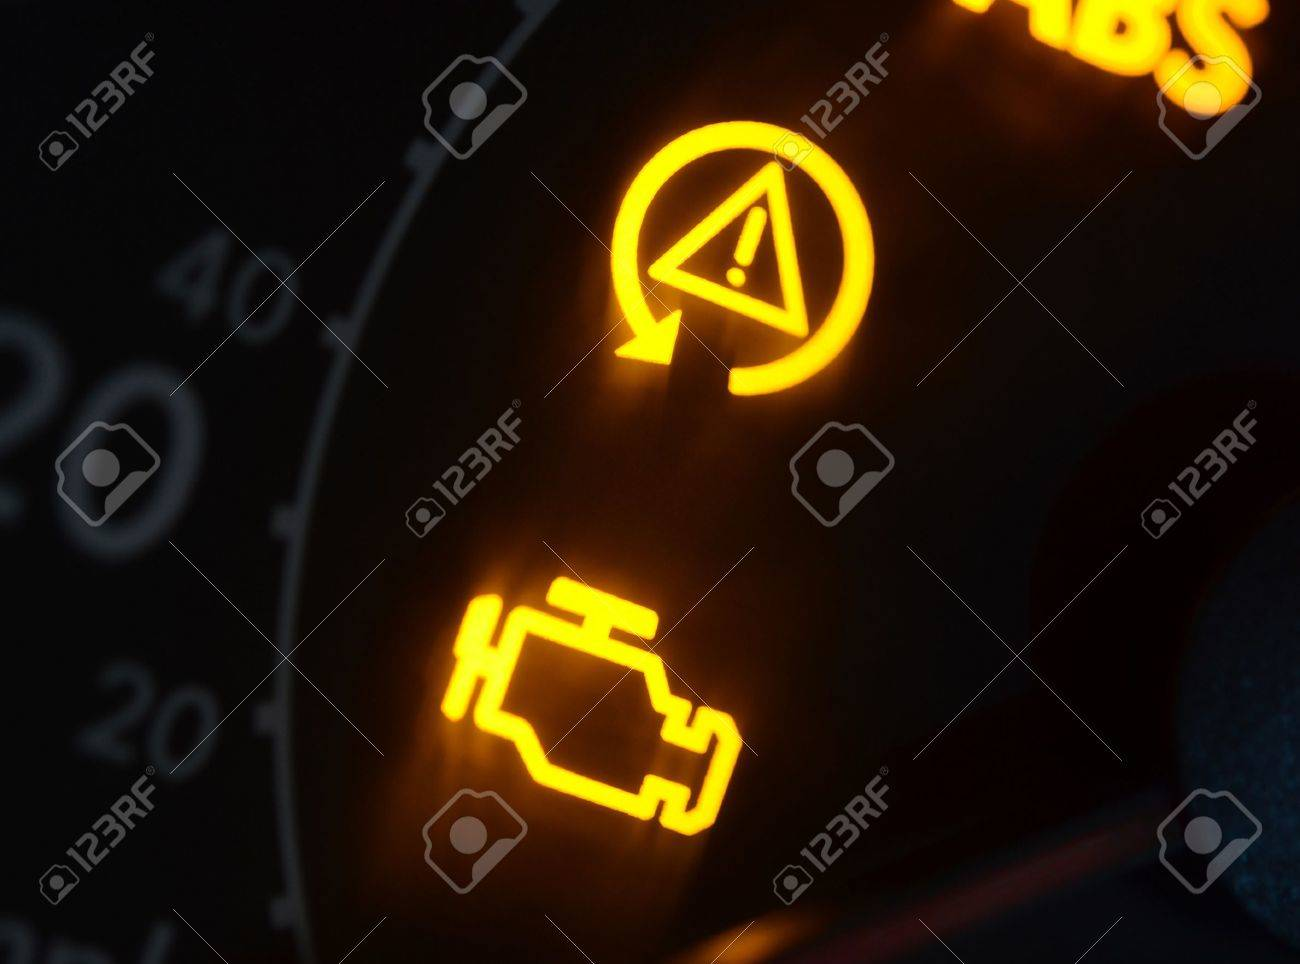 Car Dashboard Icons Stock Photos  Pictures Royalty Free Car - Car image sign of dashboard